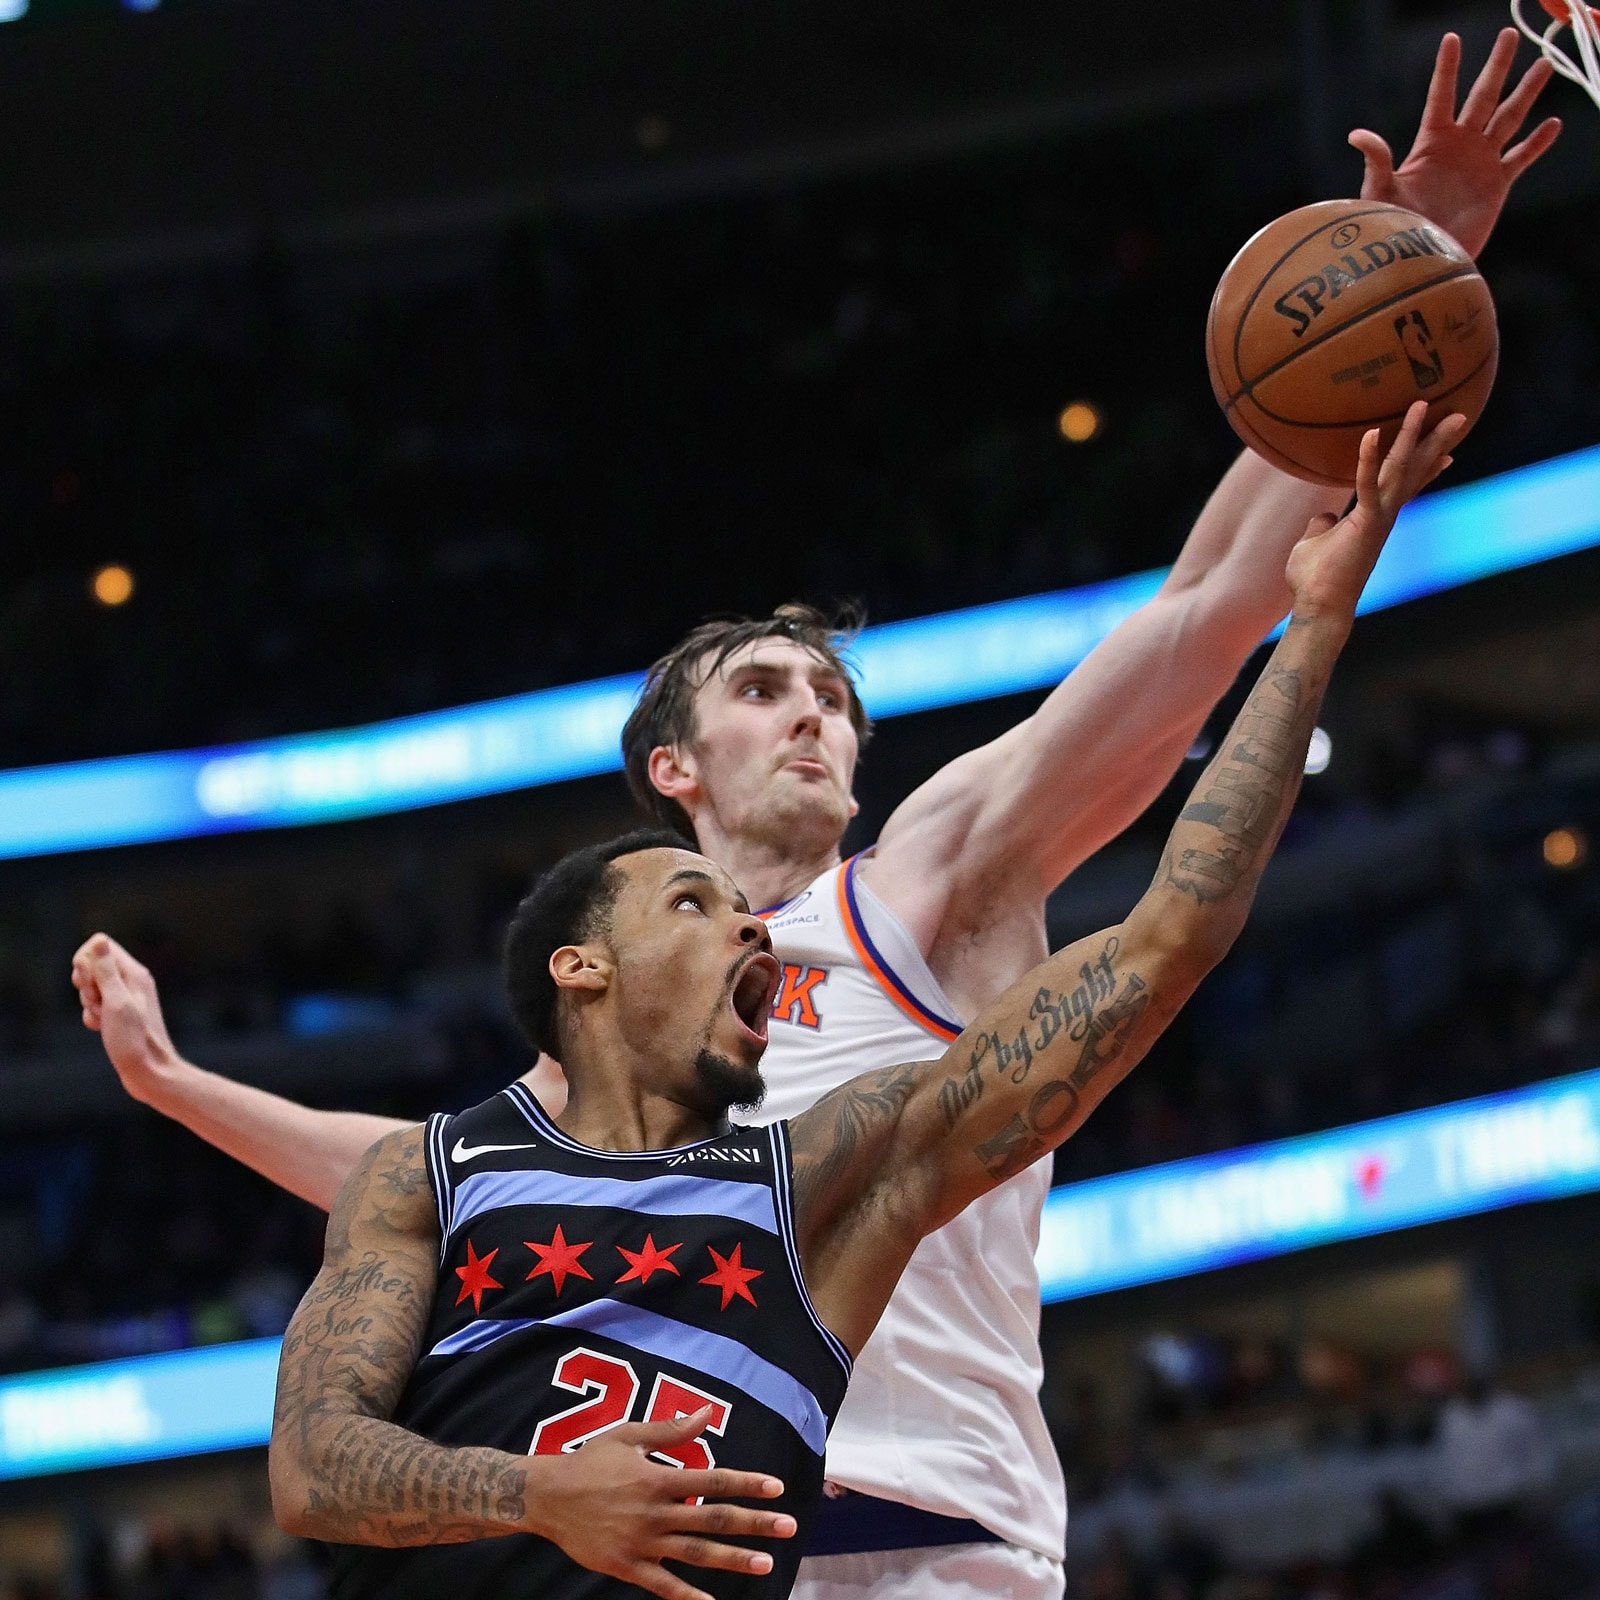 Walt Lemon Jr. #25 of the Chicago Bulls drives to the basket against Luke Kornet #2 of the New York Knicks at the United Center on April 09, 2019 in Chicago, Illinois. The Knicks defeated the Bulls 96-86.